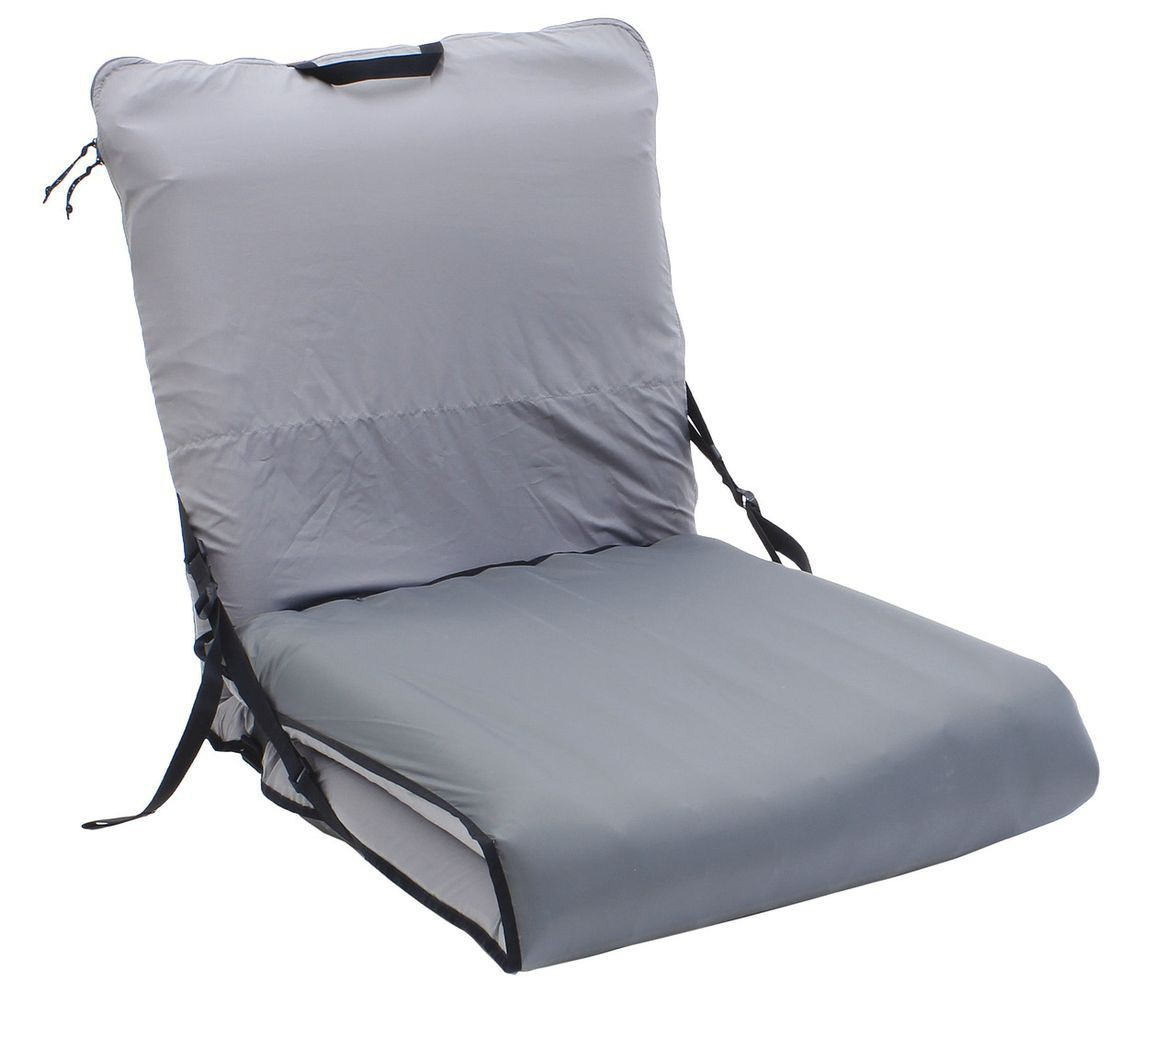 Exped chair kit fauteuil si ge chaise matelas for Housse rangement matelas